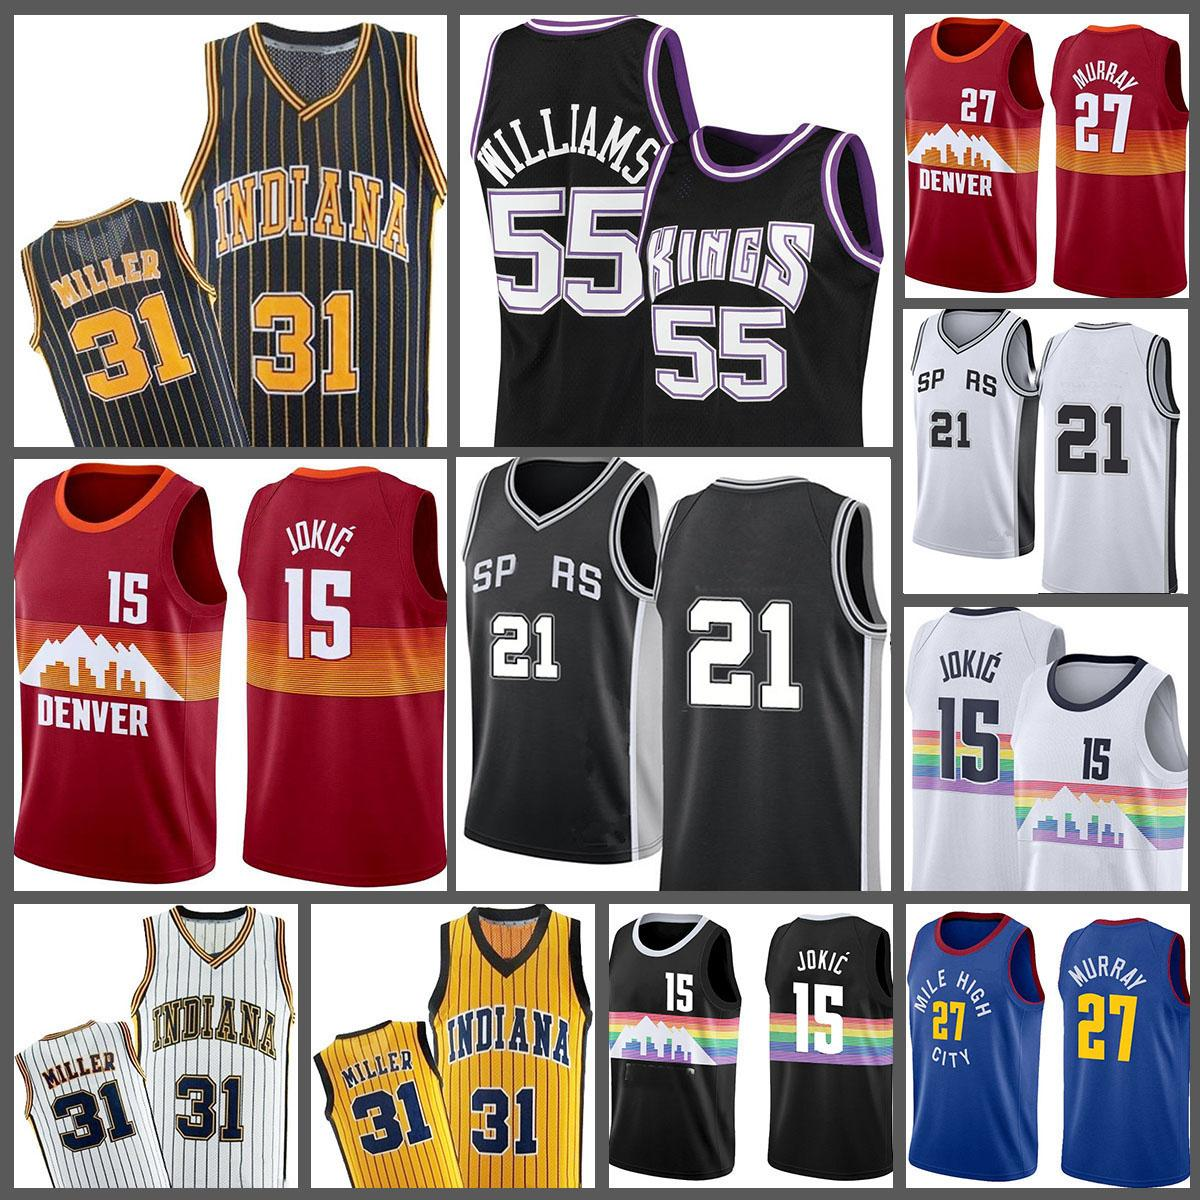 15 Jason Reggie Tim Chris 55 Williams Miller 21 Nikola Webber Jokic Basketball Jersey Mesh Retro 2021 Novo